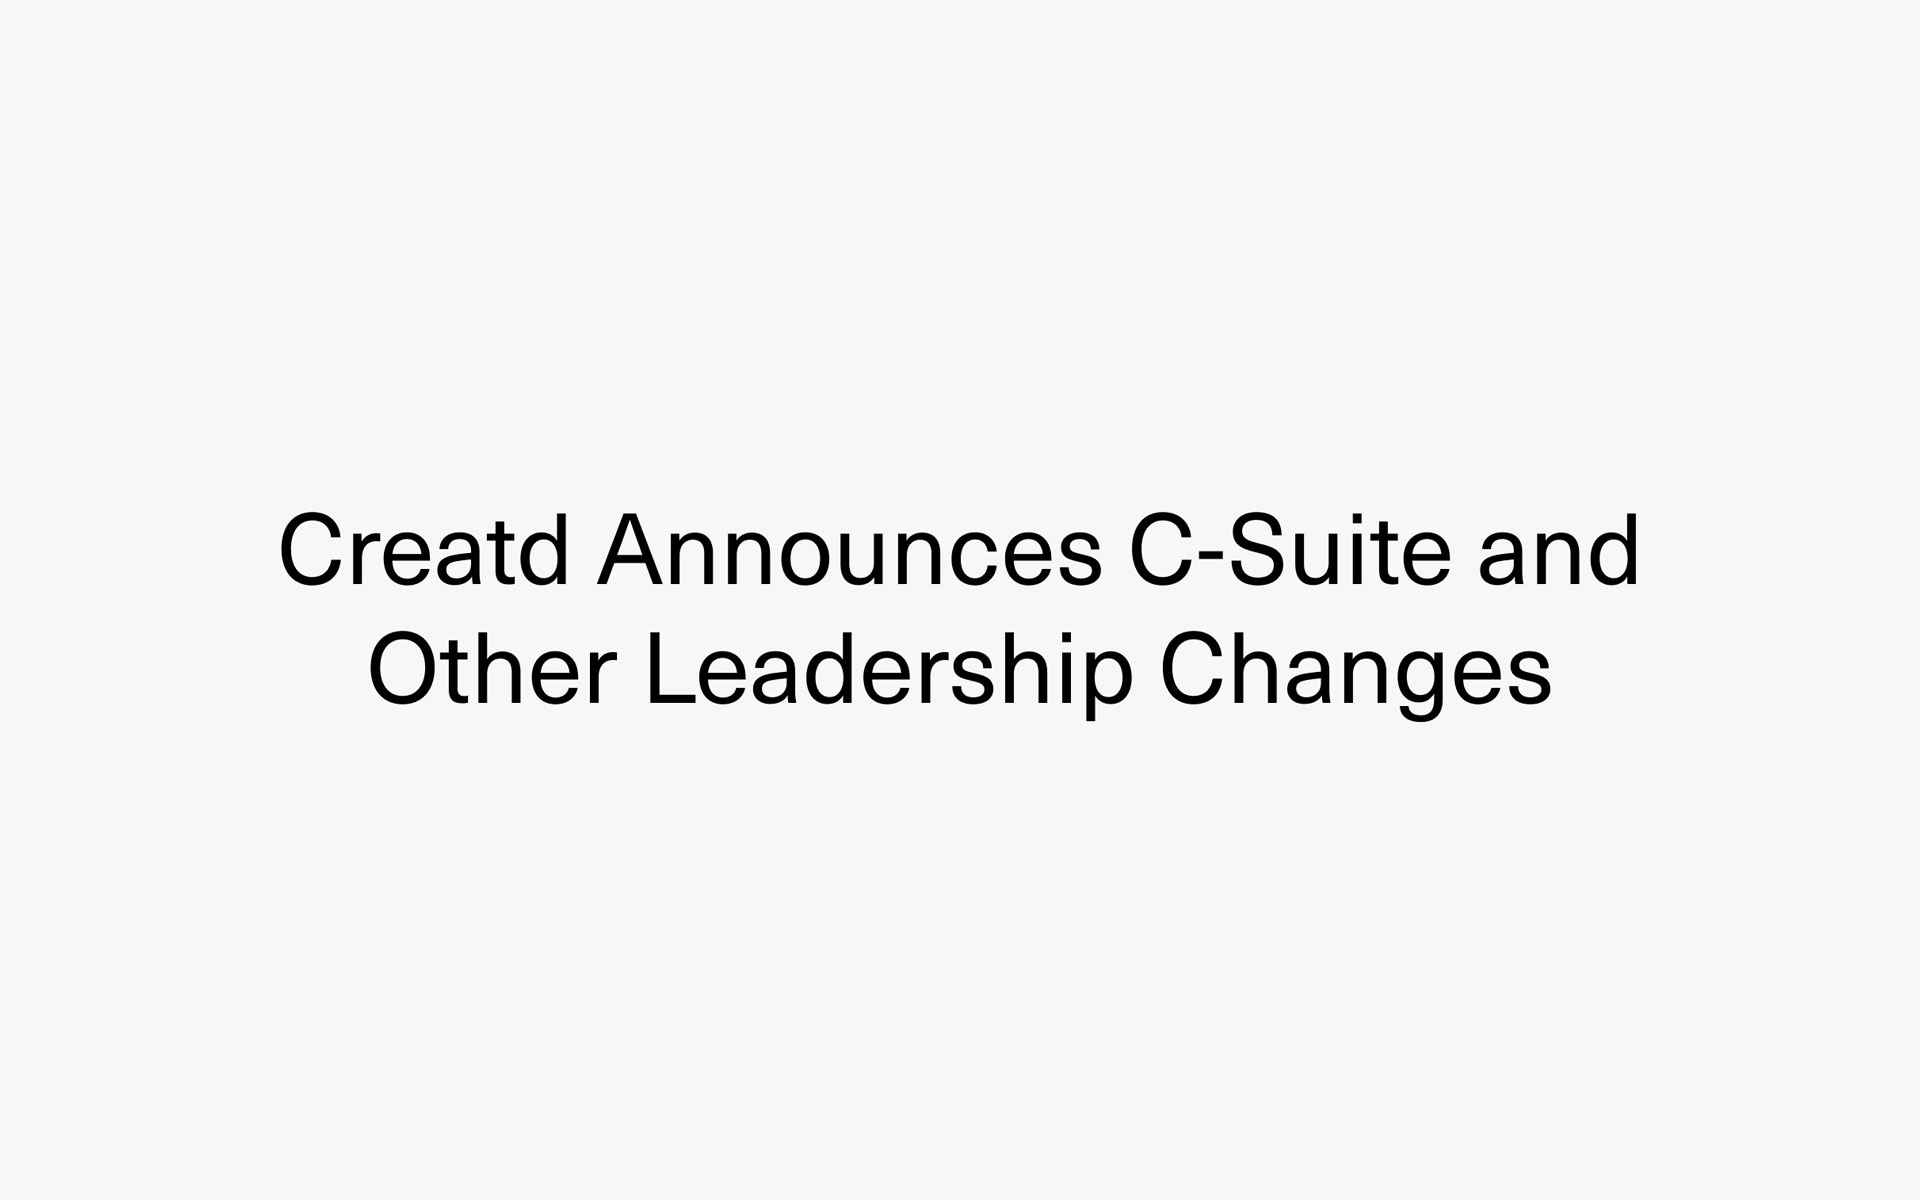 Creatd Announces C-Suite and Other Leadership Changes